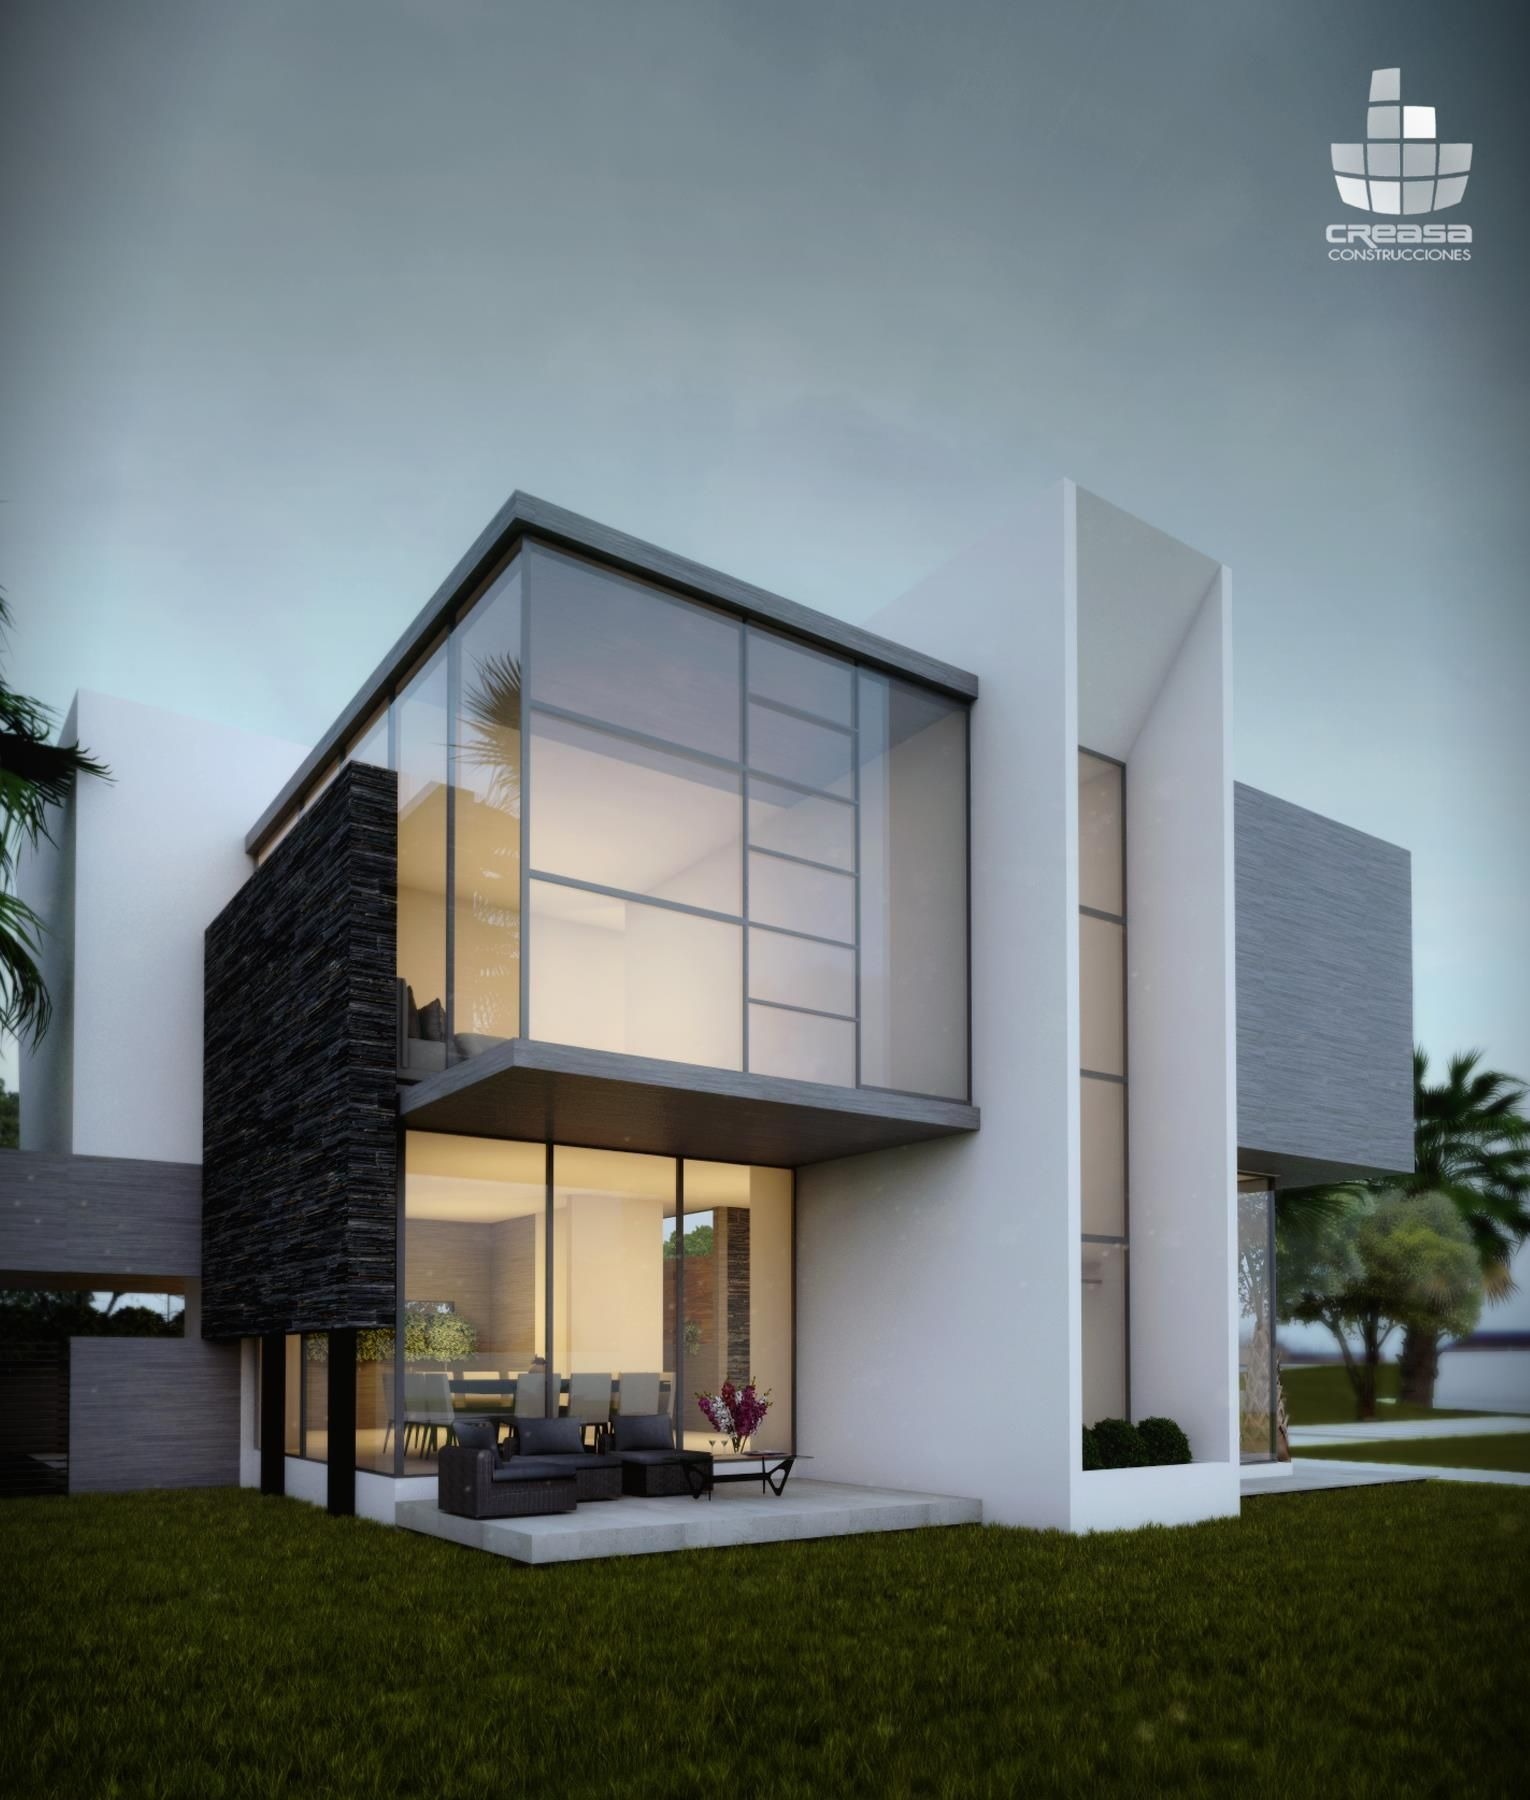 Creasa modern architecture pinterest villas house for Modern house architecture